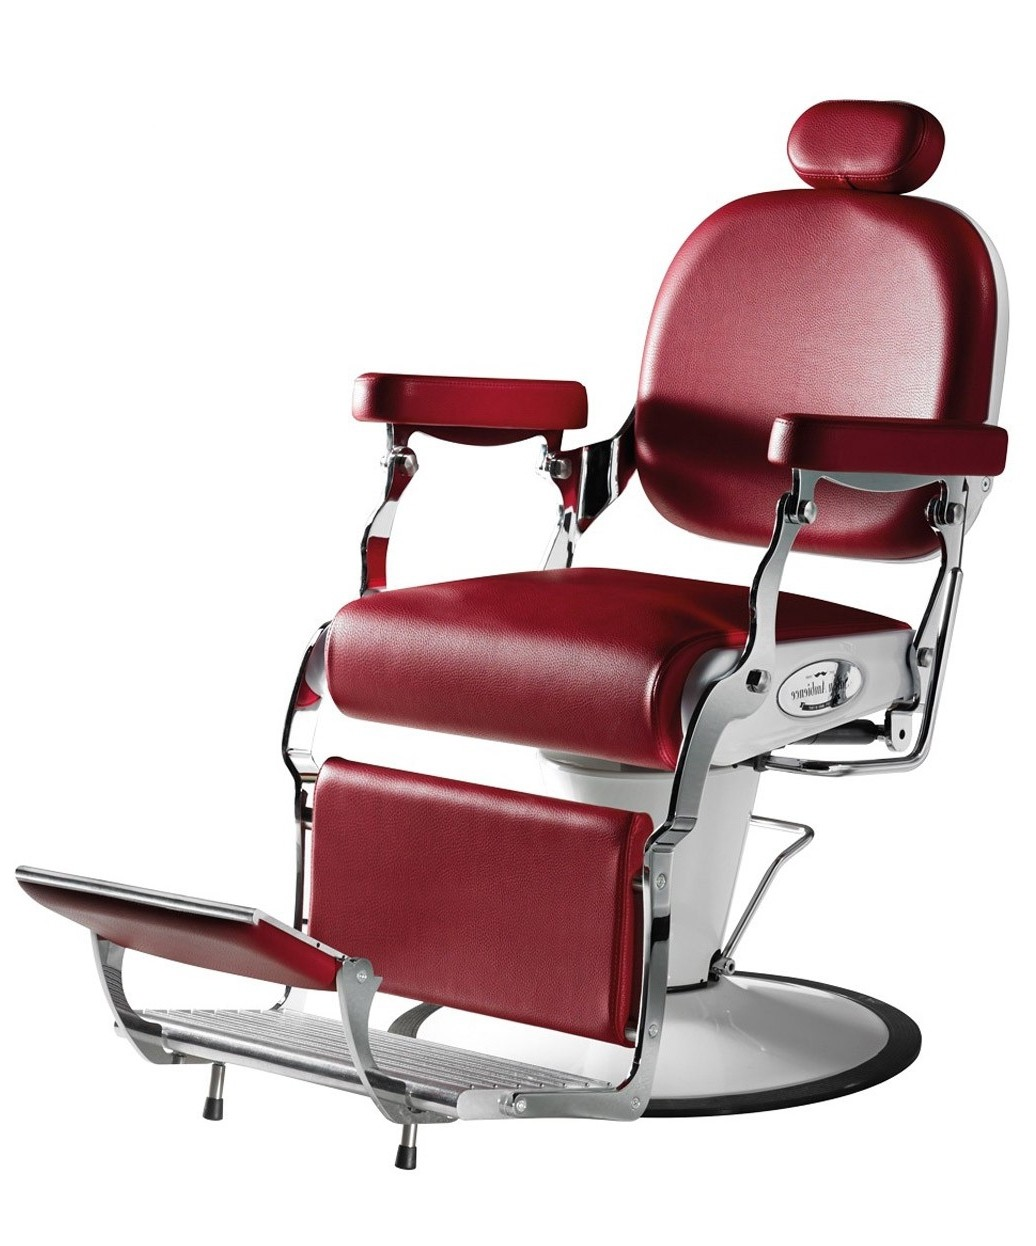 SH-277-6 Premier Italian Barber Chair